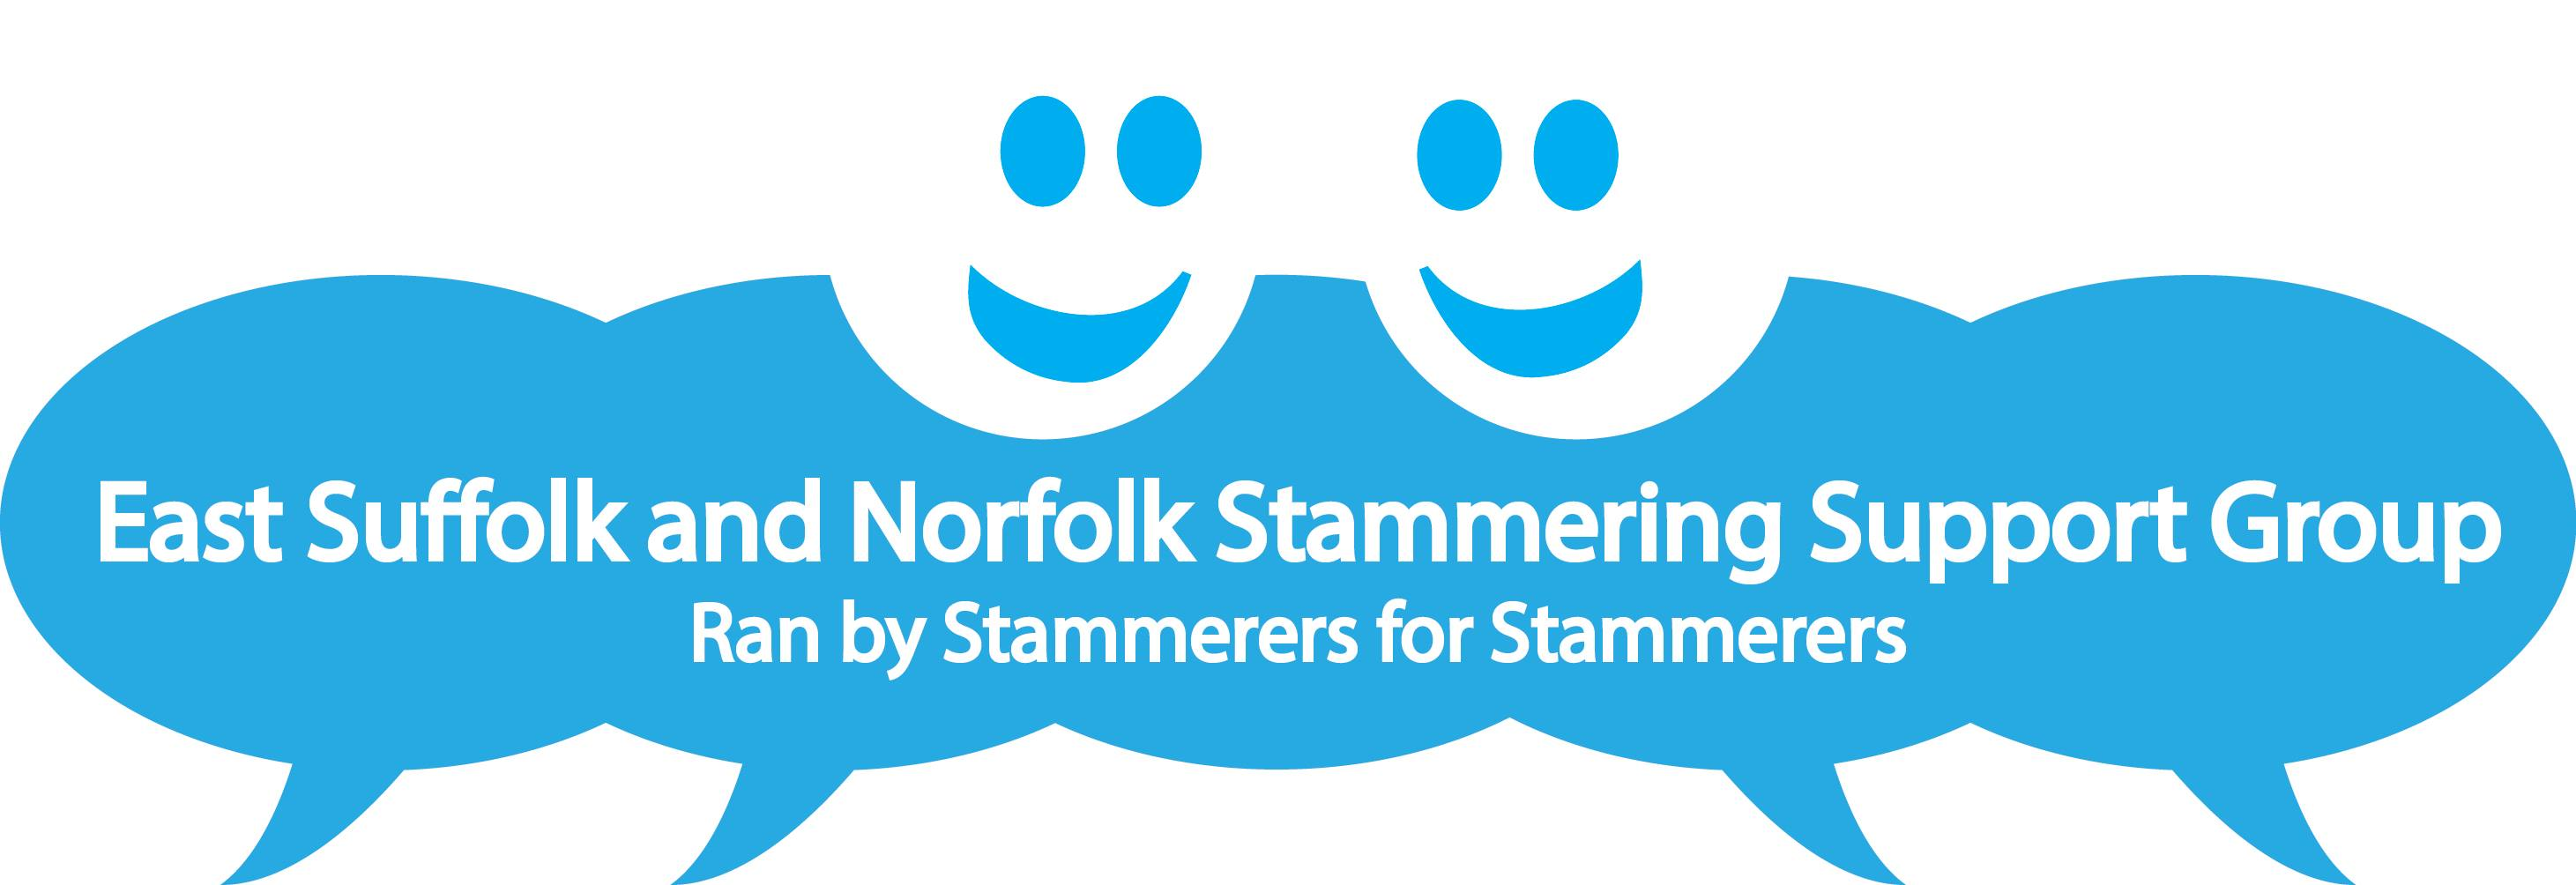 The East Suffolk & Norfolk Stammering Support Group